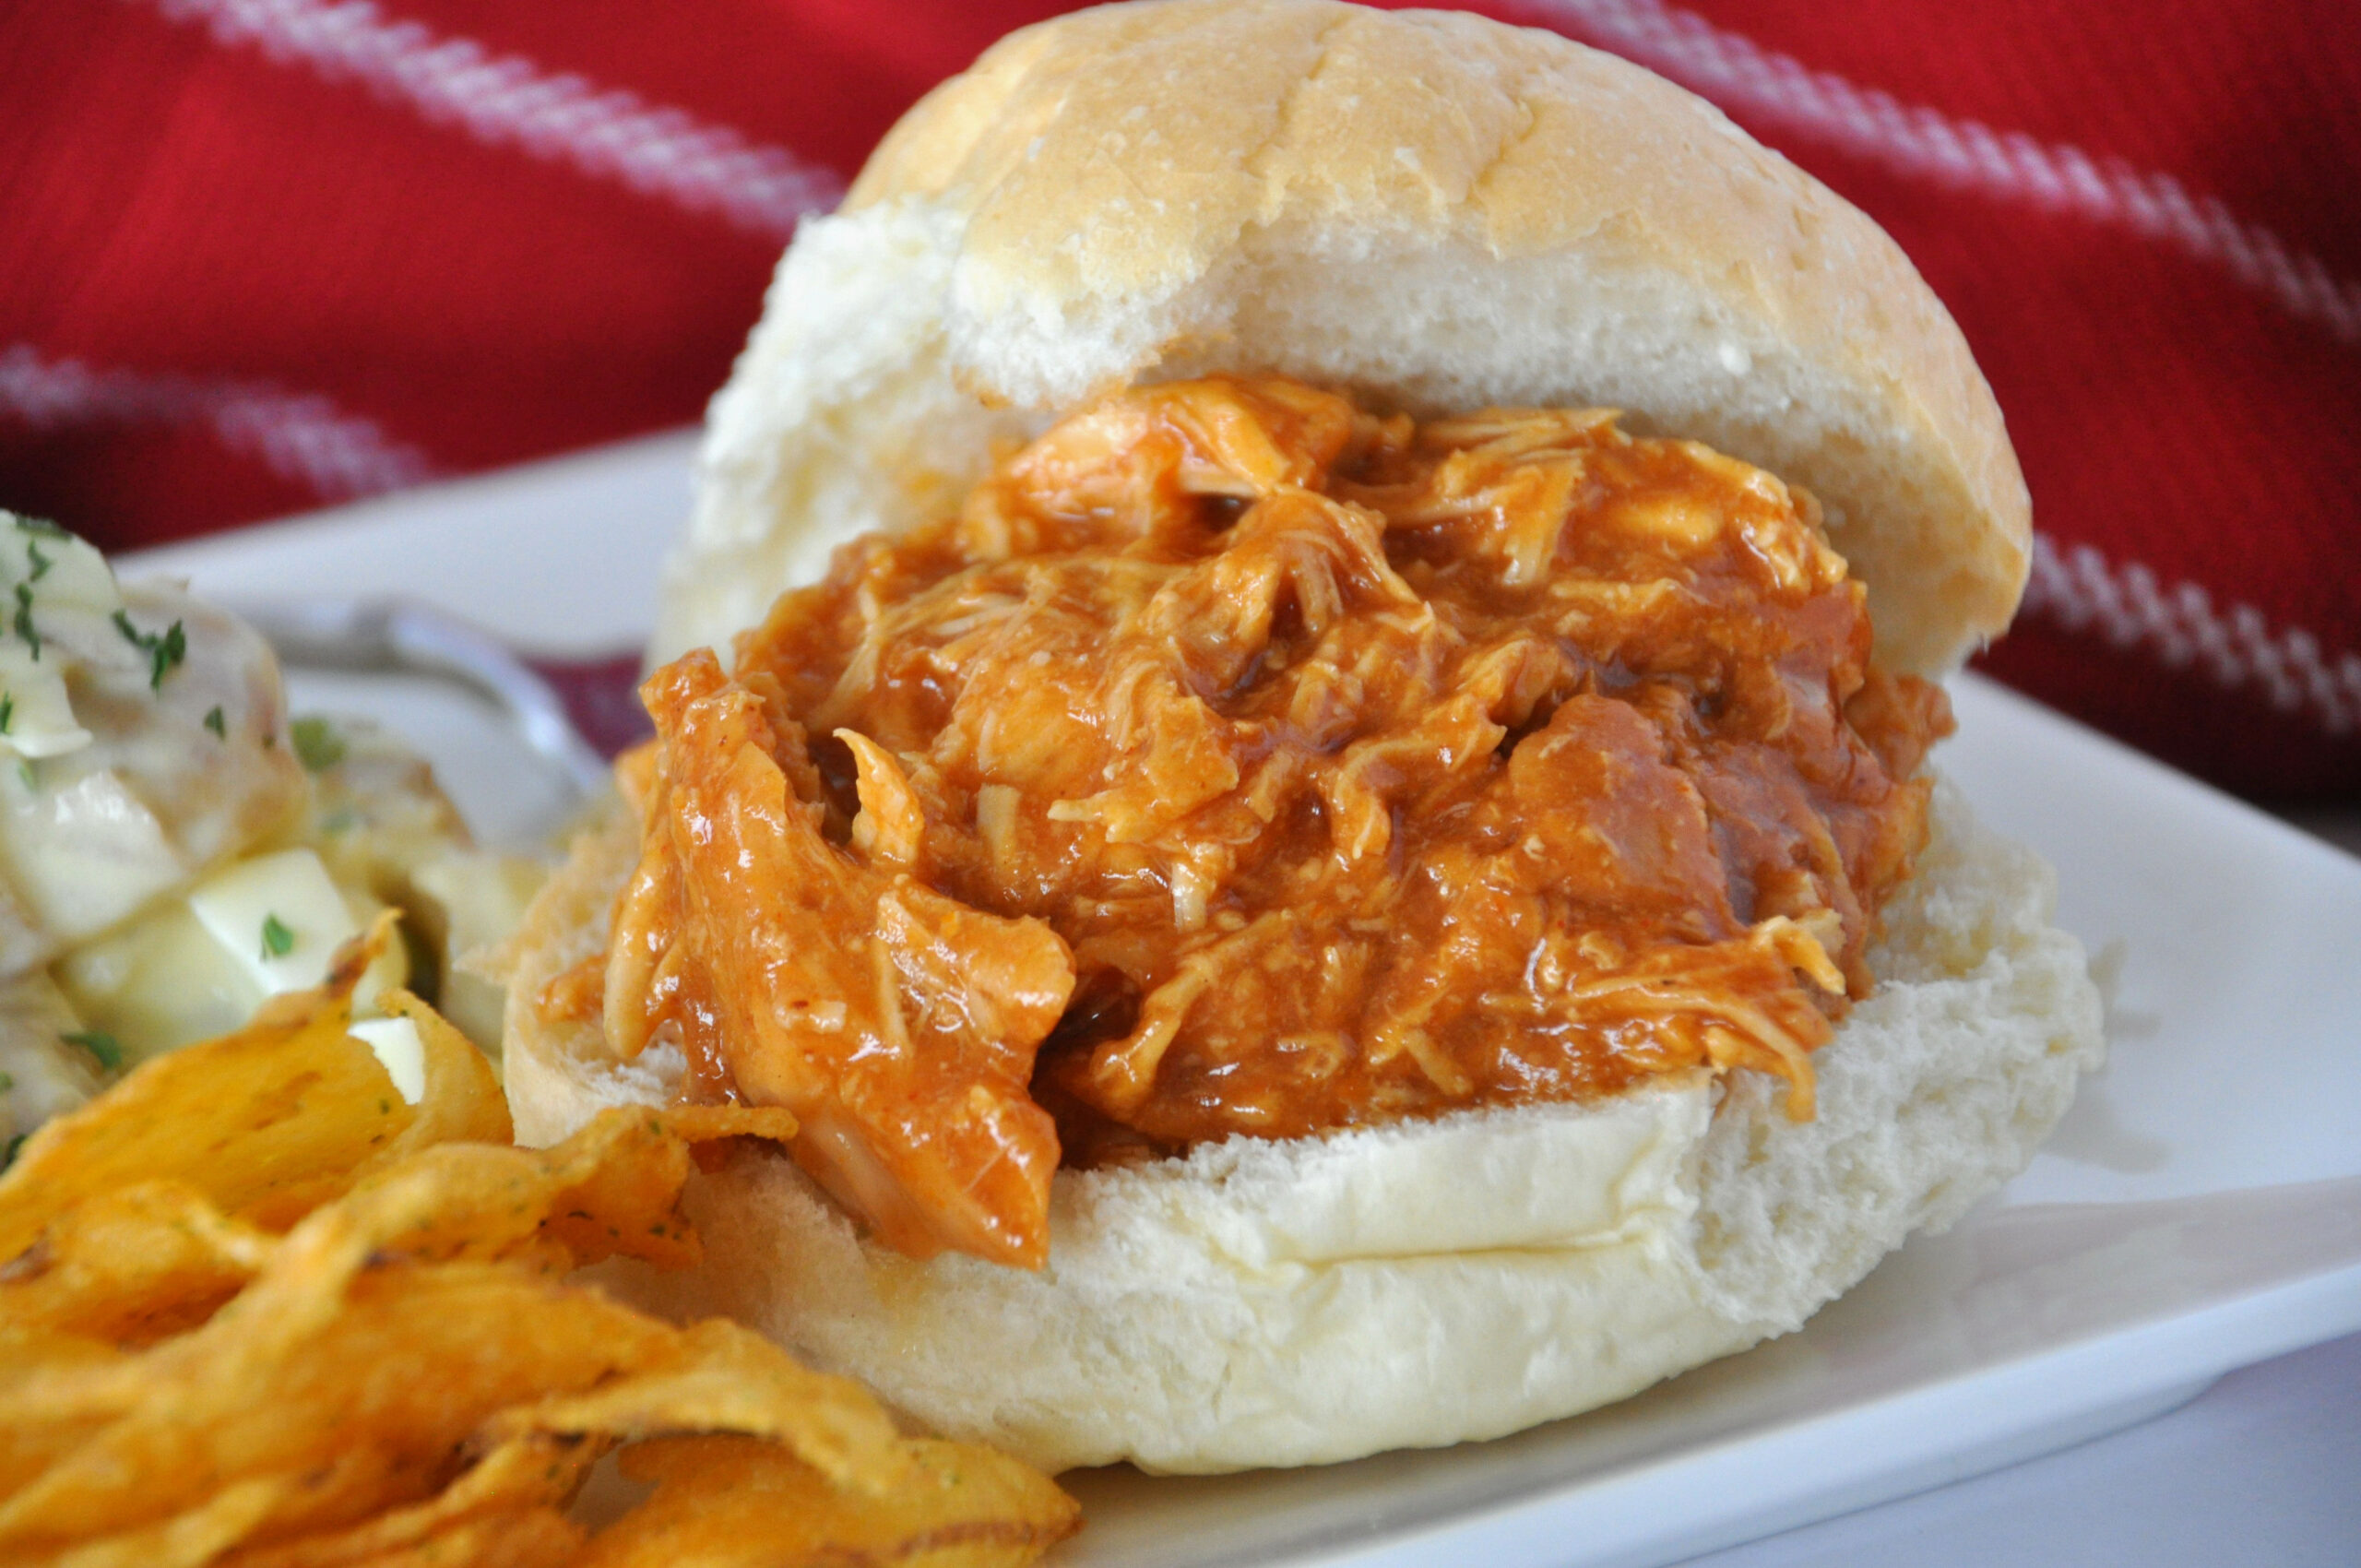 Slow Cooker Pulled Chicken Recipe - All Recipes UK - Uk Slow Cooker Recipes Chicken